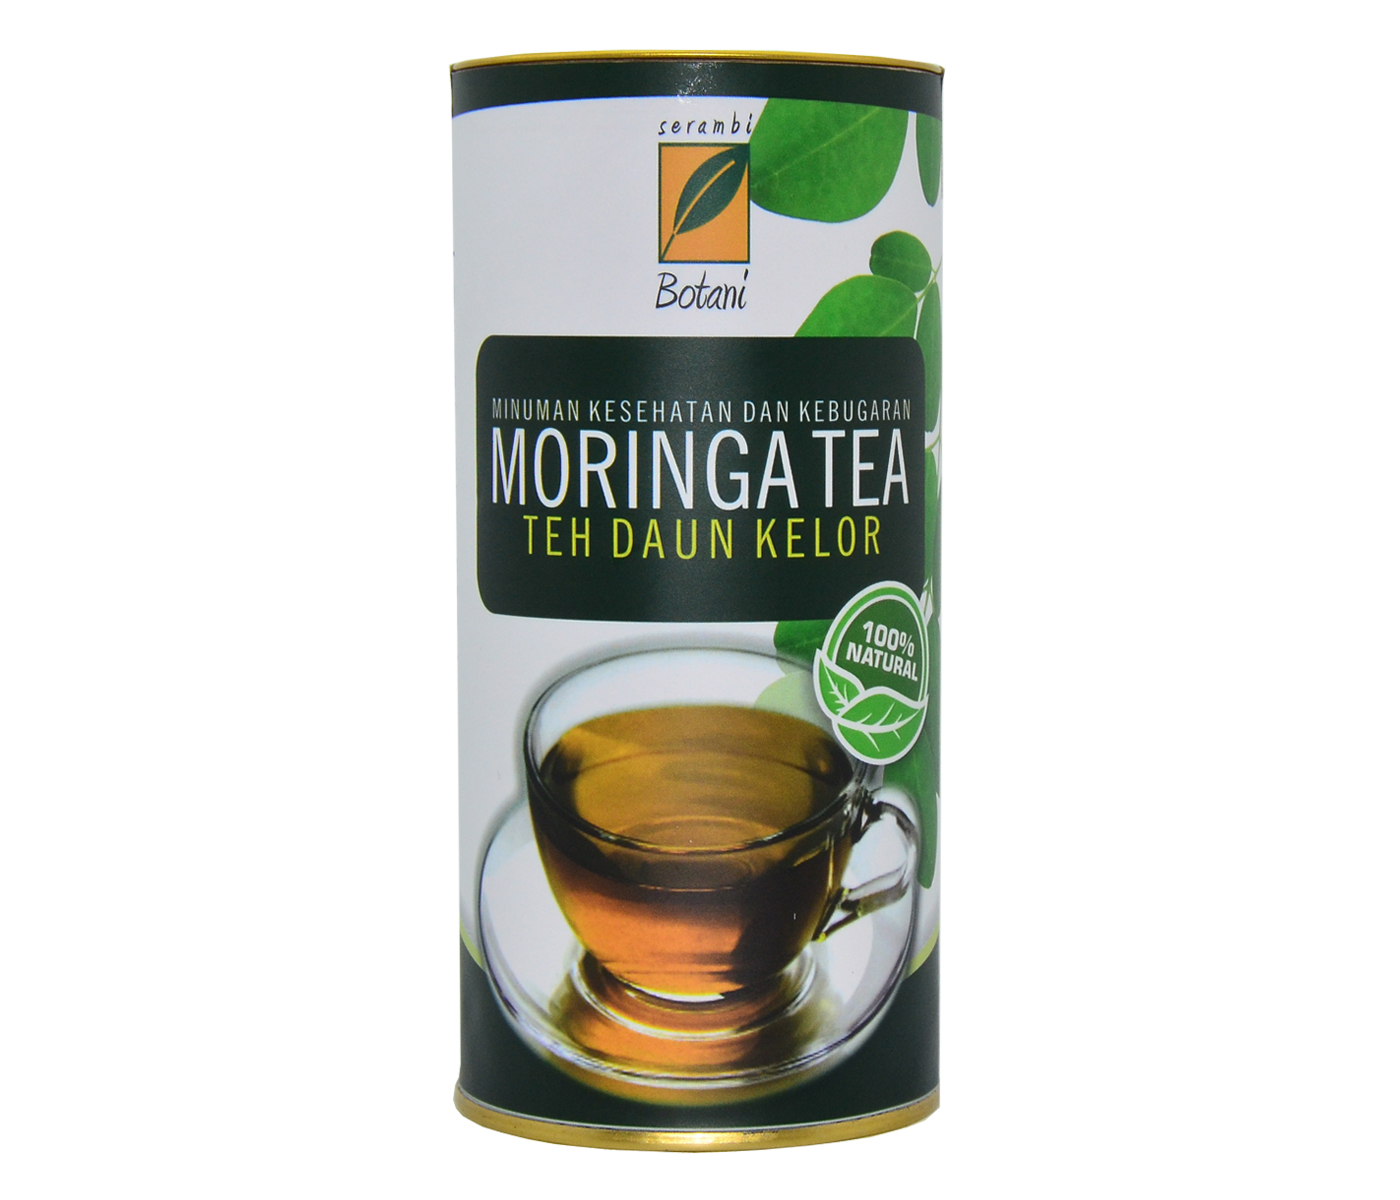 Facts About Moringa Tea